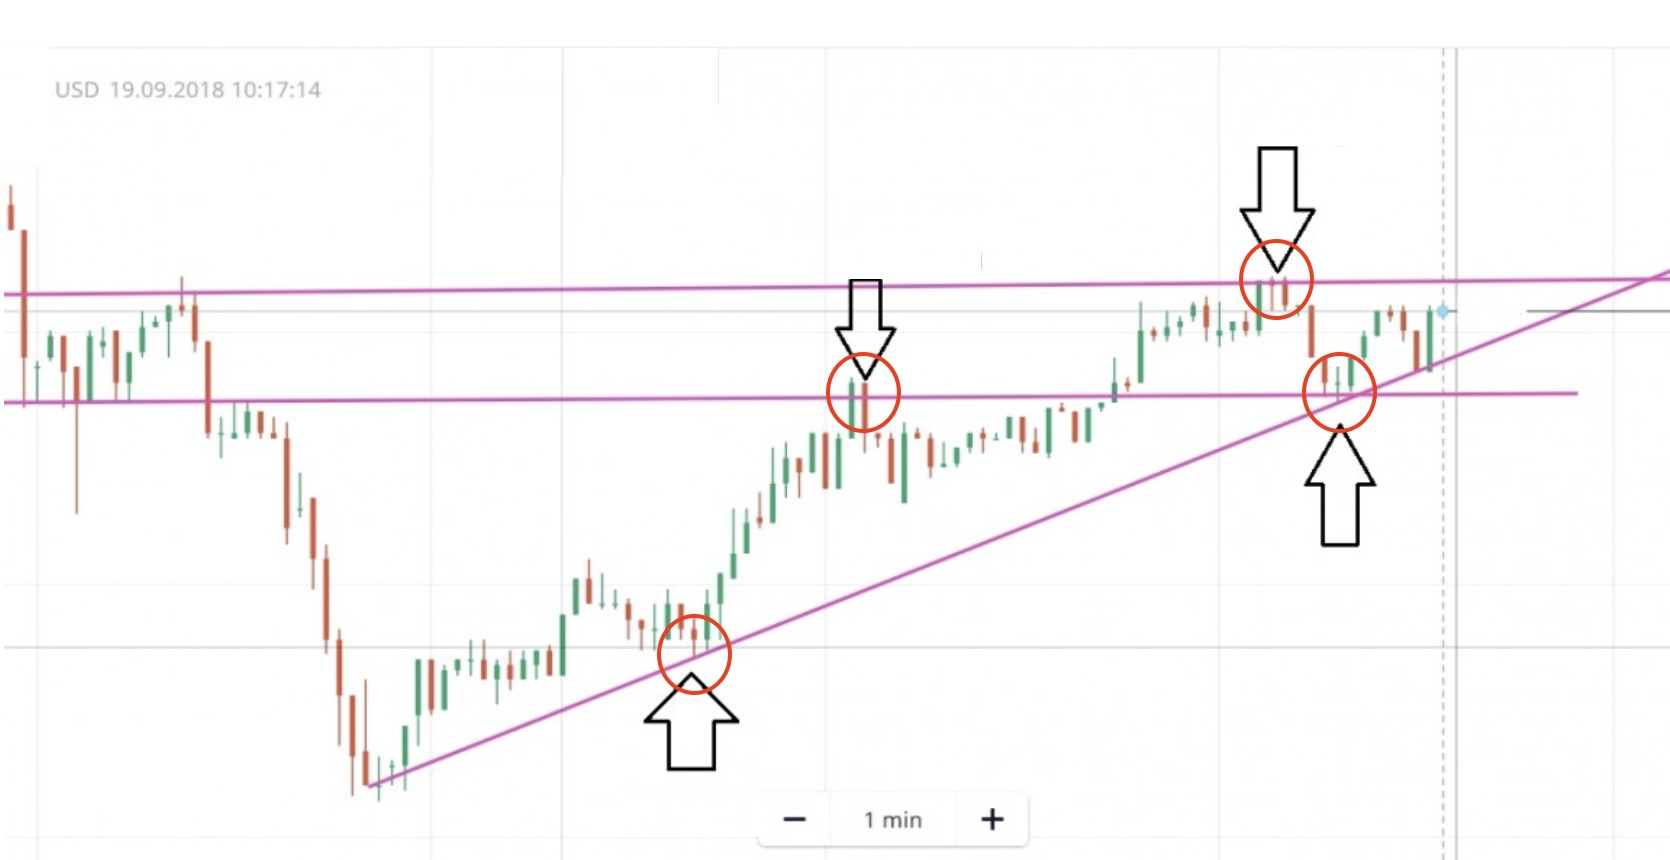 Combination of Trendline and Ladder candlestick pattern